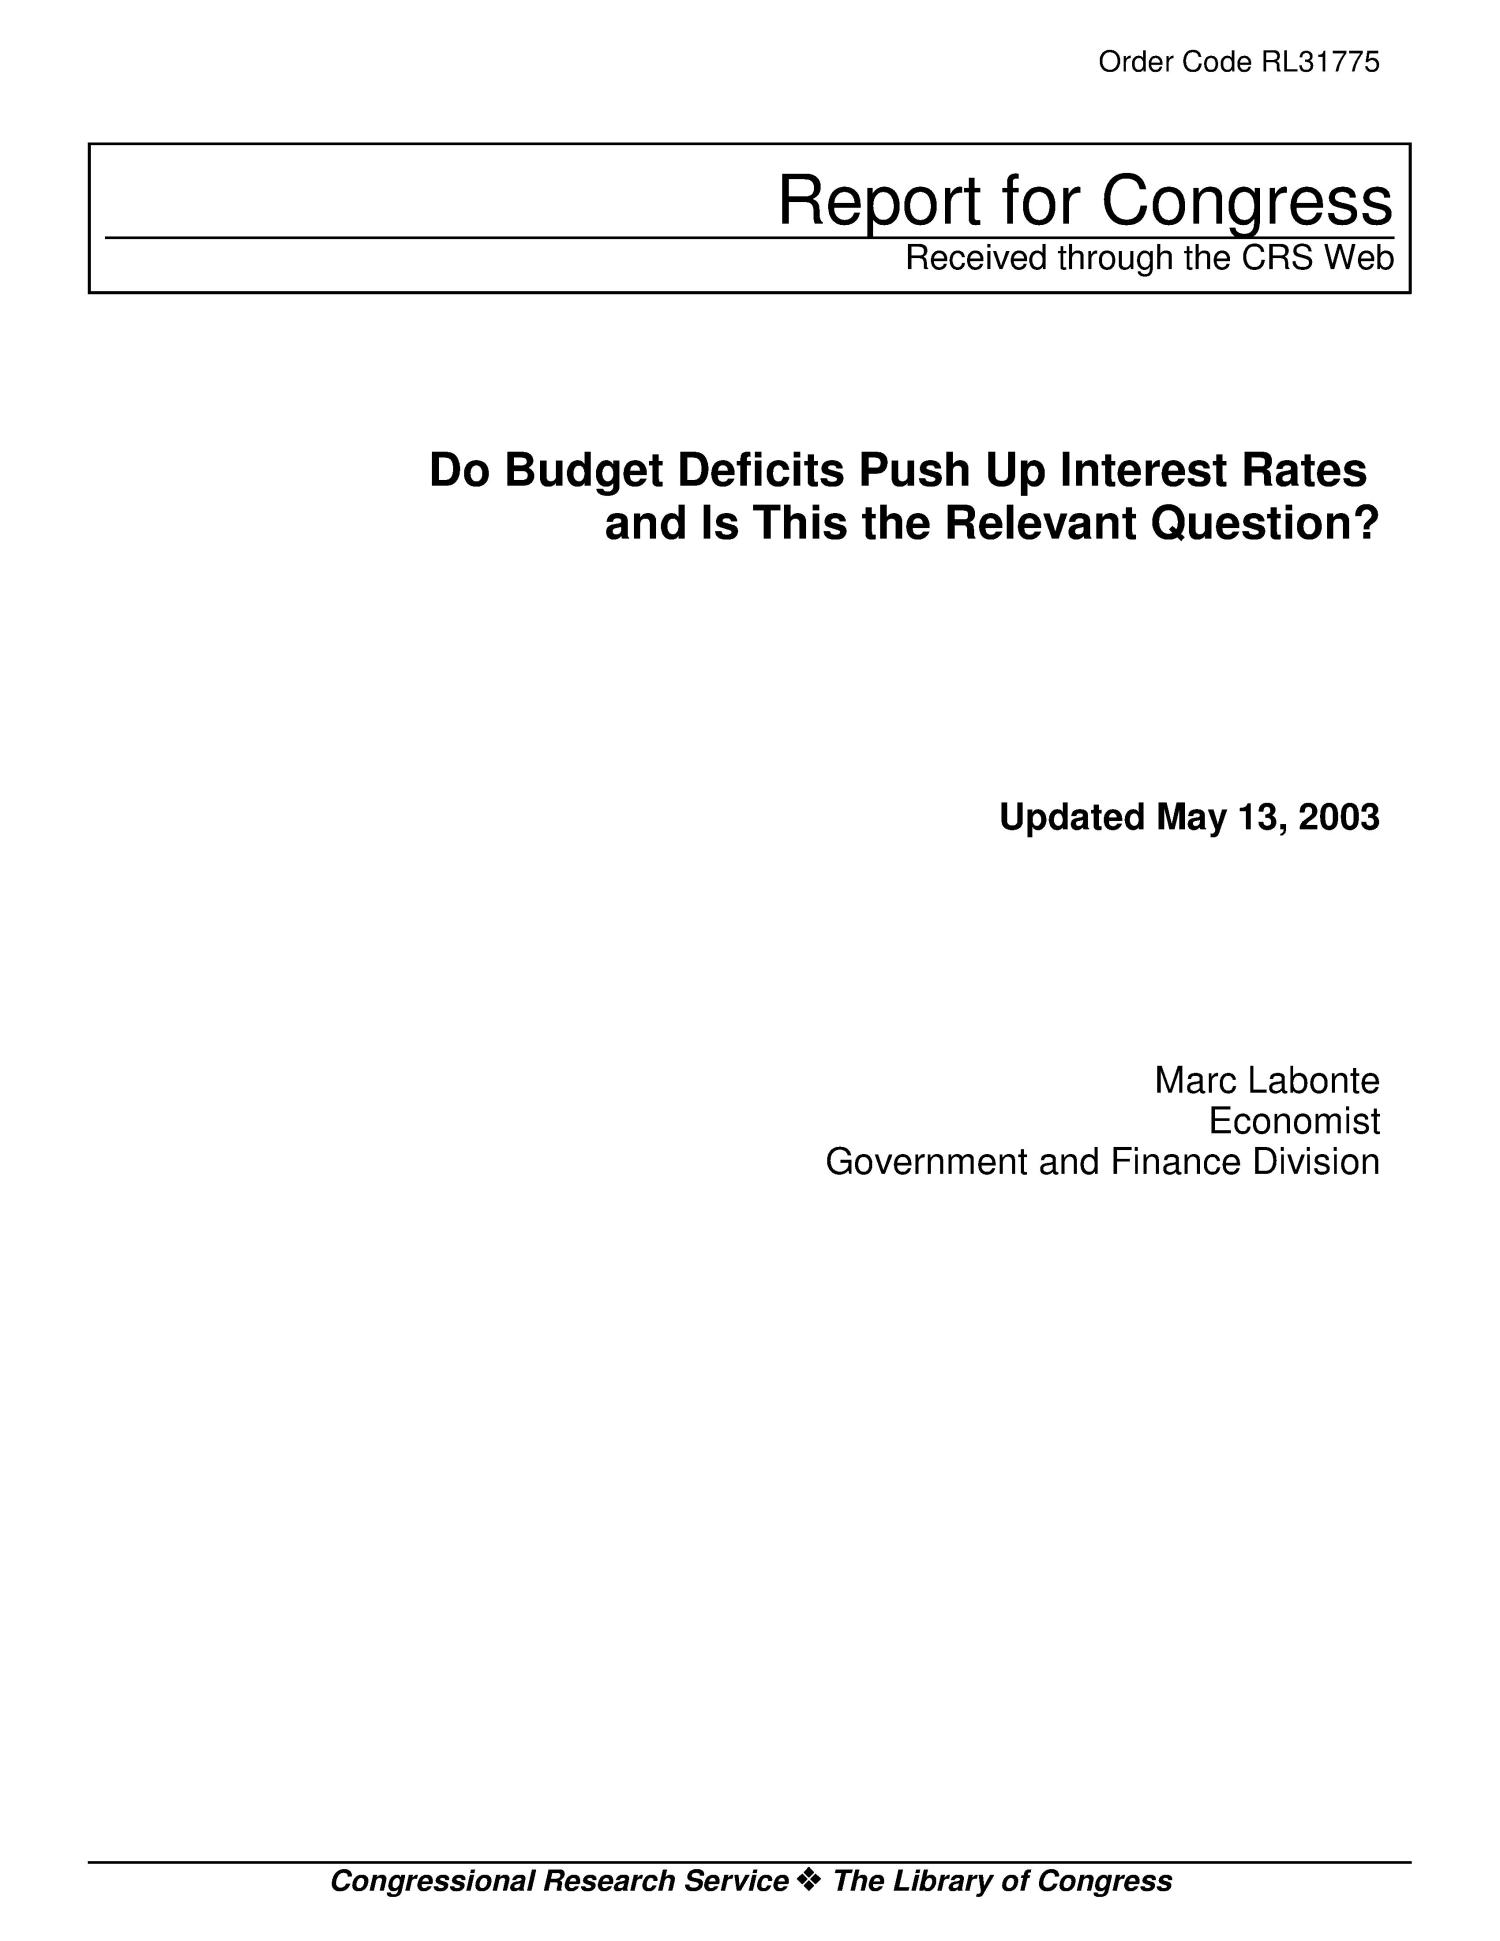 Do Budget Deficits Push Up Interest Rates and Is This the Relevant Question?                                                                                                      [Sequence #]: 1 of 16